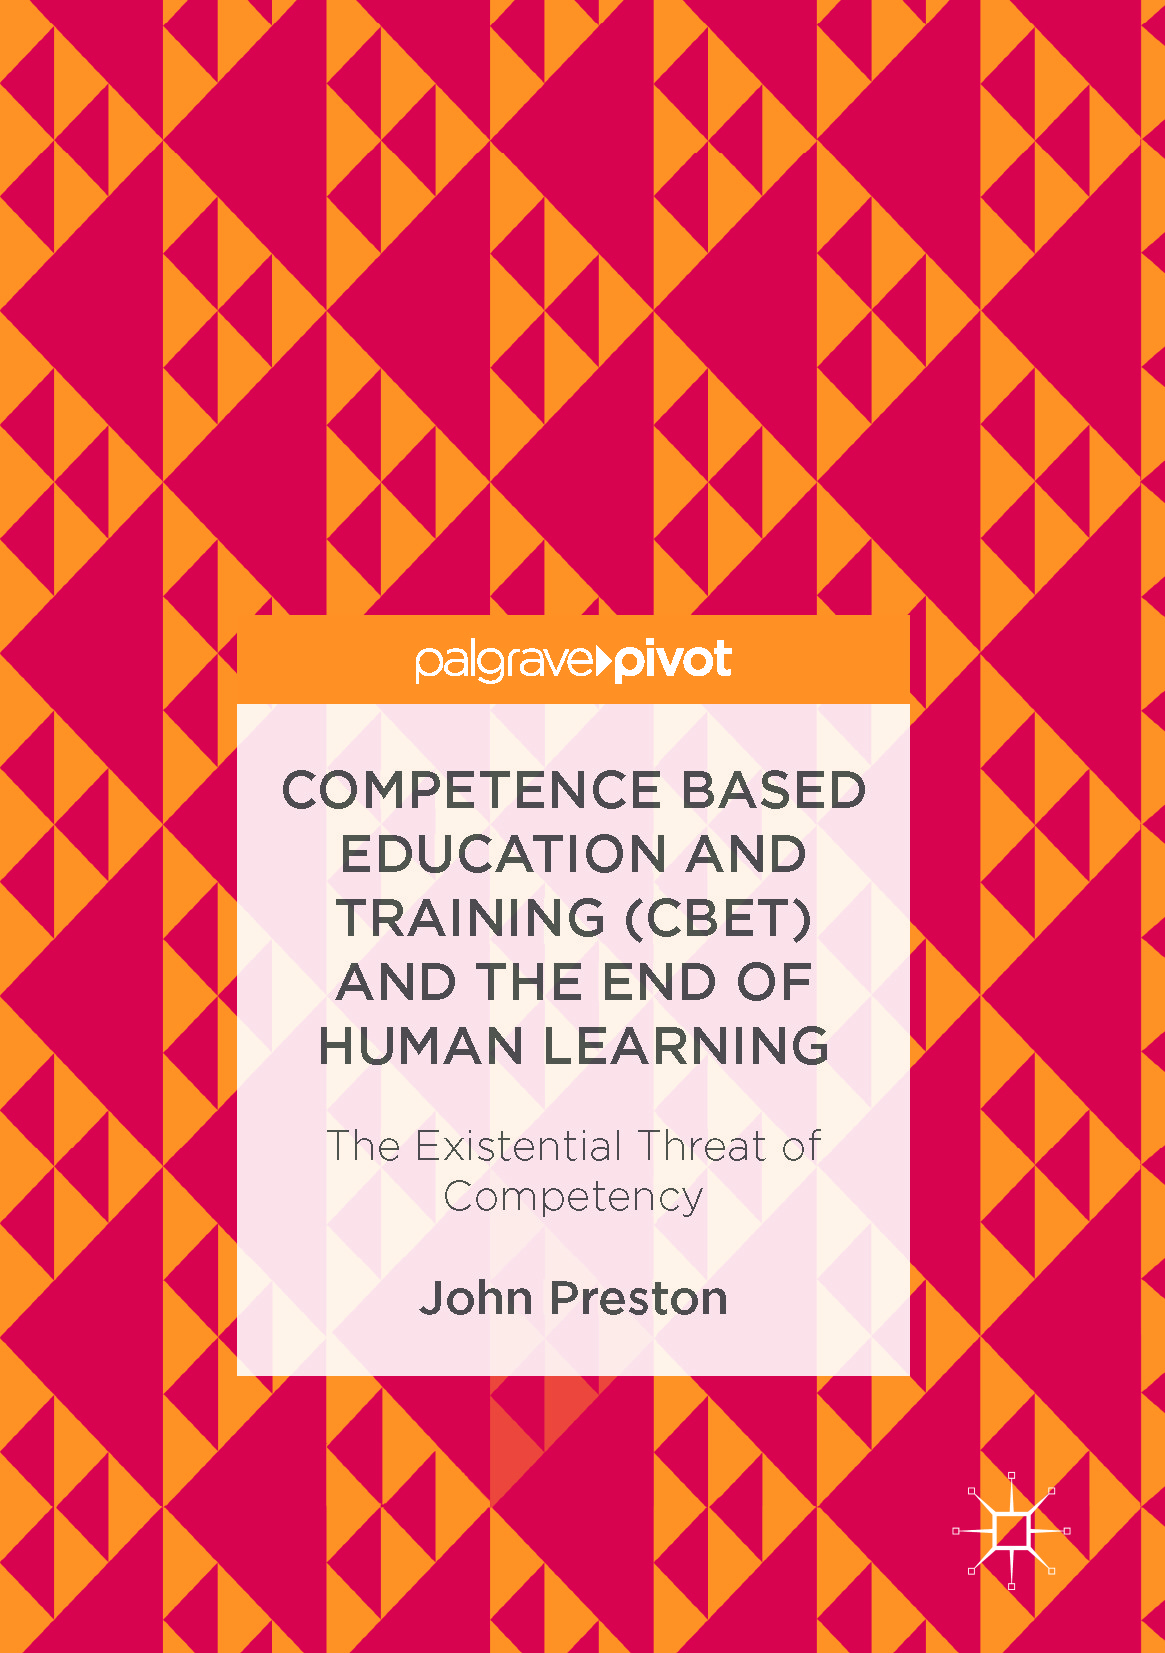 Preston, John - Competence Based Education and Training (CBET) and the End of Human Learning, ebook